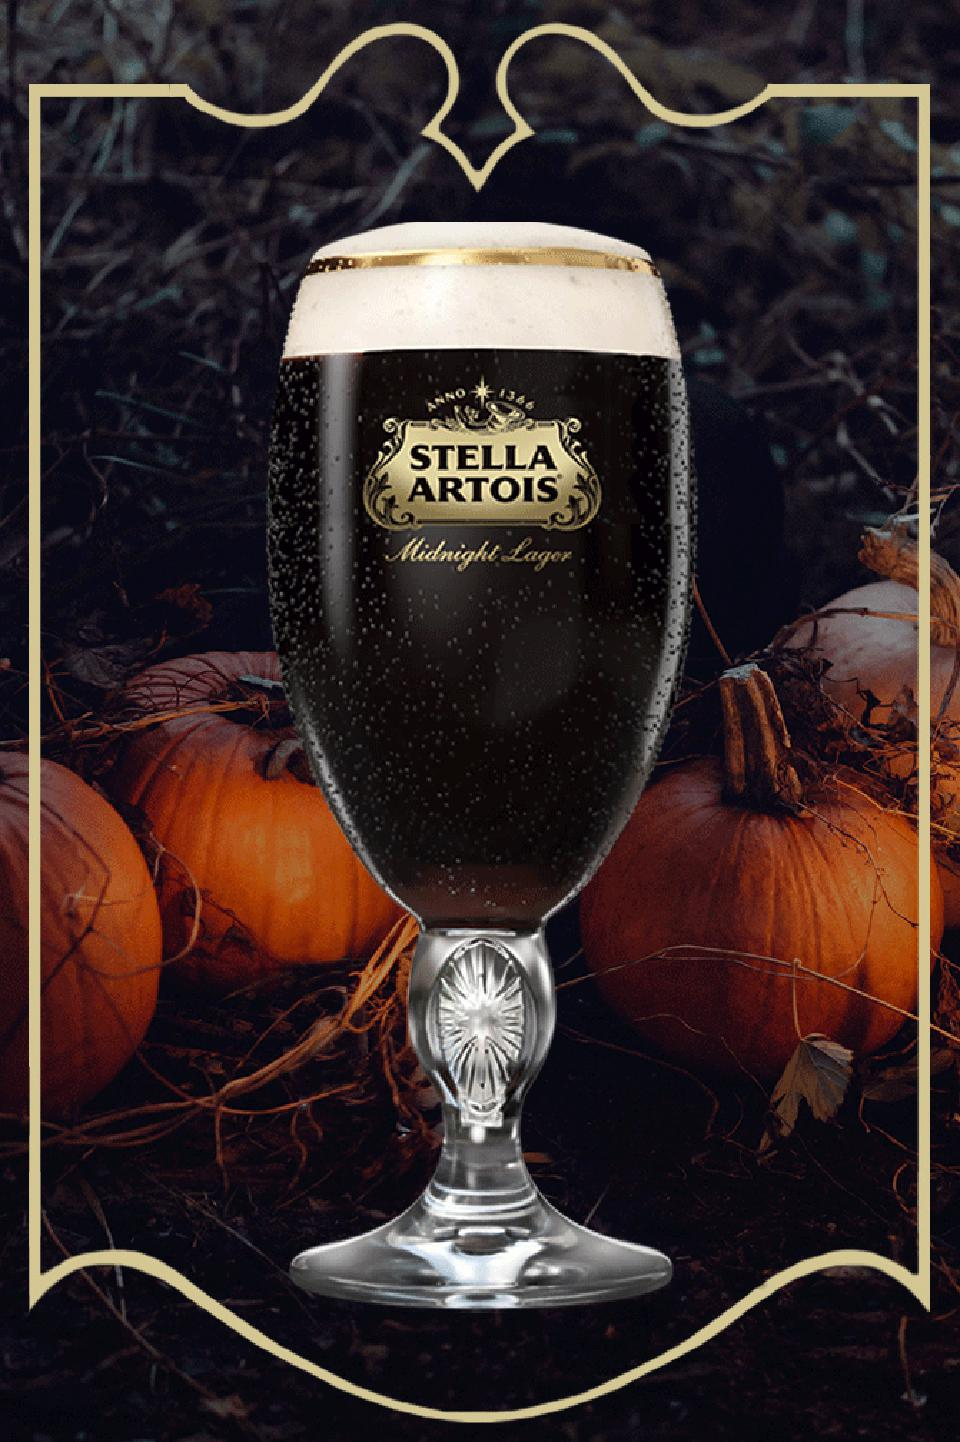 The new Midnight Lager from Stella Artois will be released on Halloween 2019.